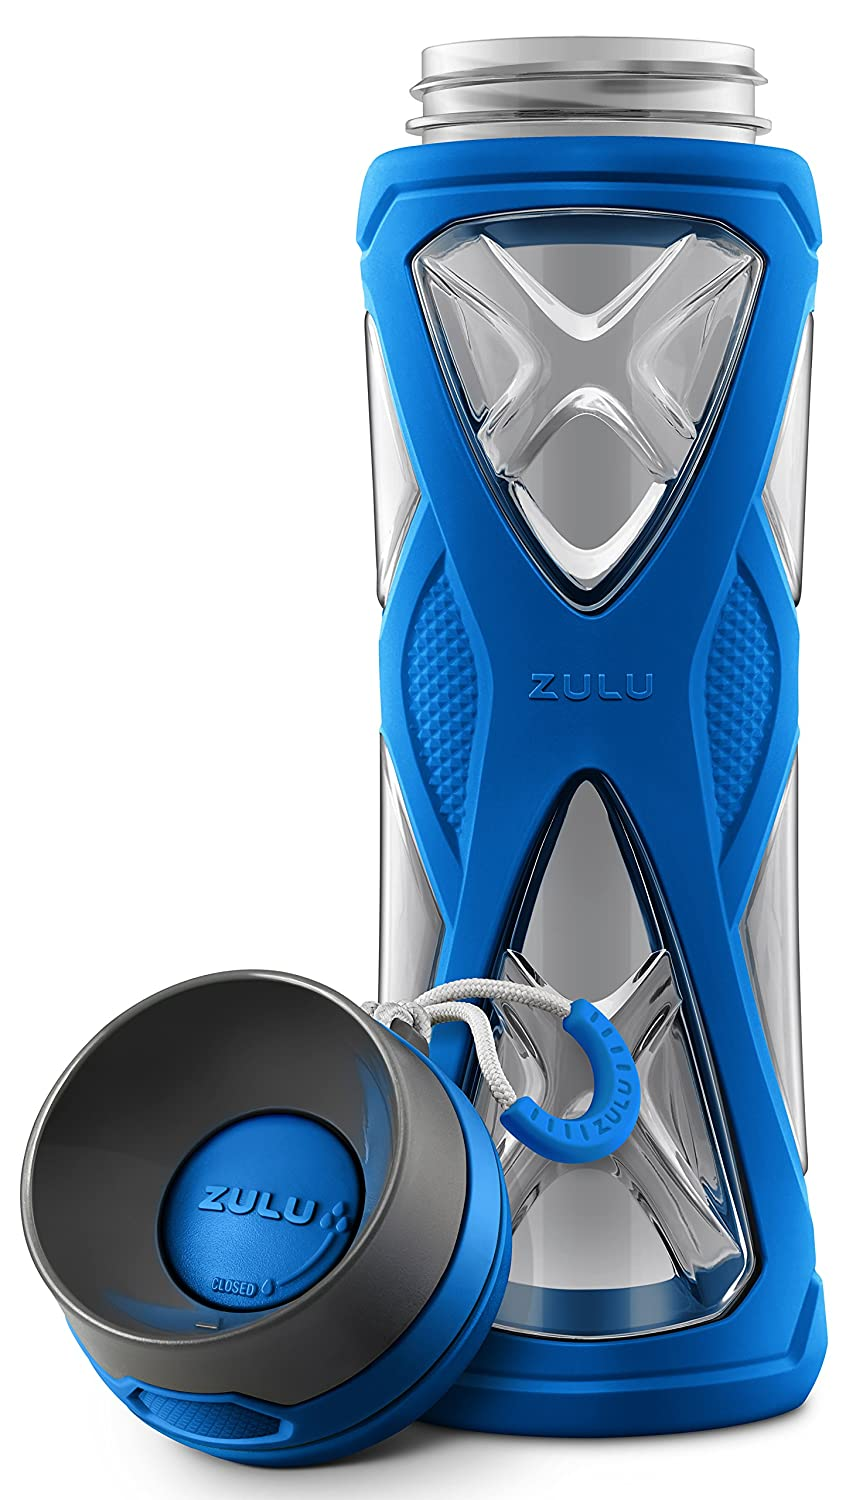 dda62b14d9 Amazon.com : Zulu Charge BPA-Free Plastic Water Bottle with 360 Dial-a-Flow  Lid, Blue, 24 oz : Sports & Outdoors